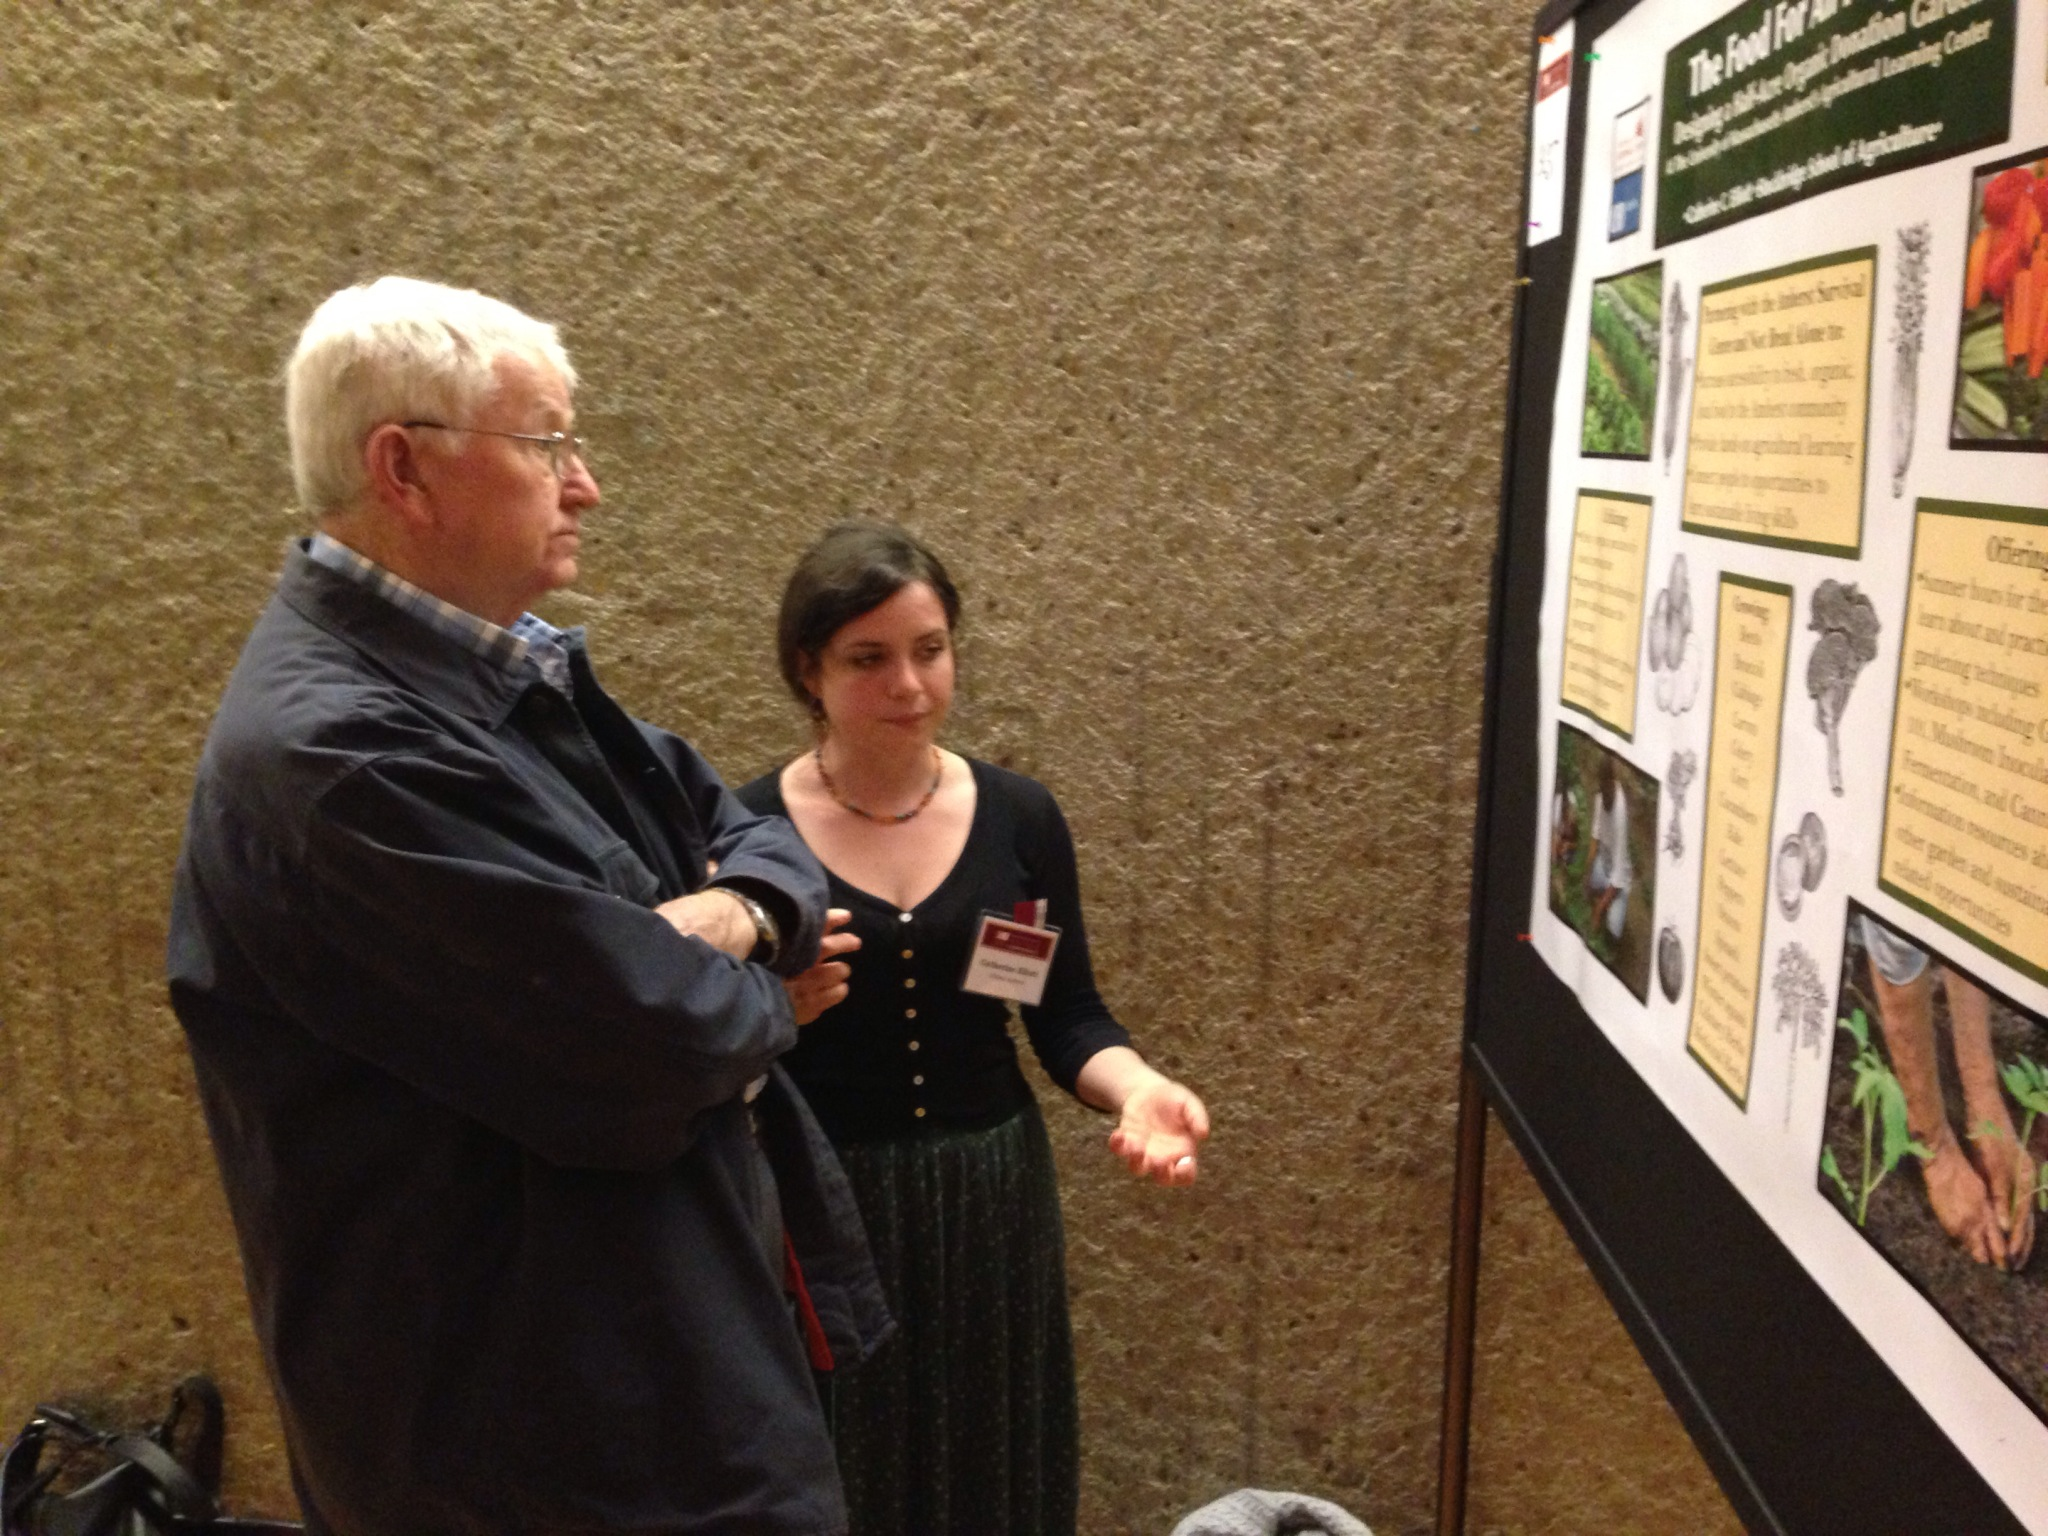 Dr. Barker comes to the Research Conference every year!